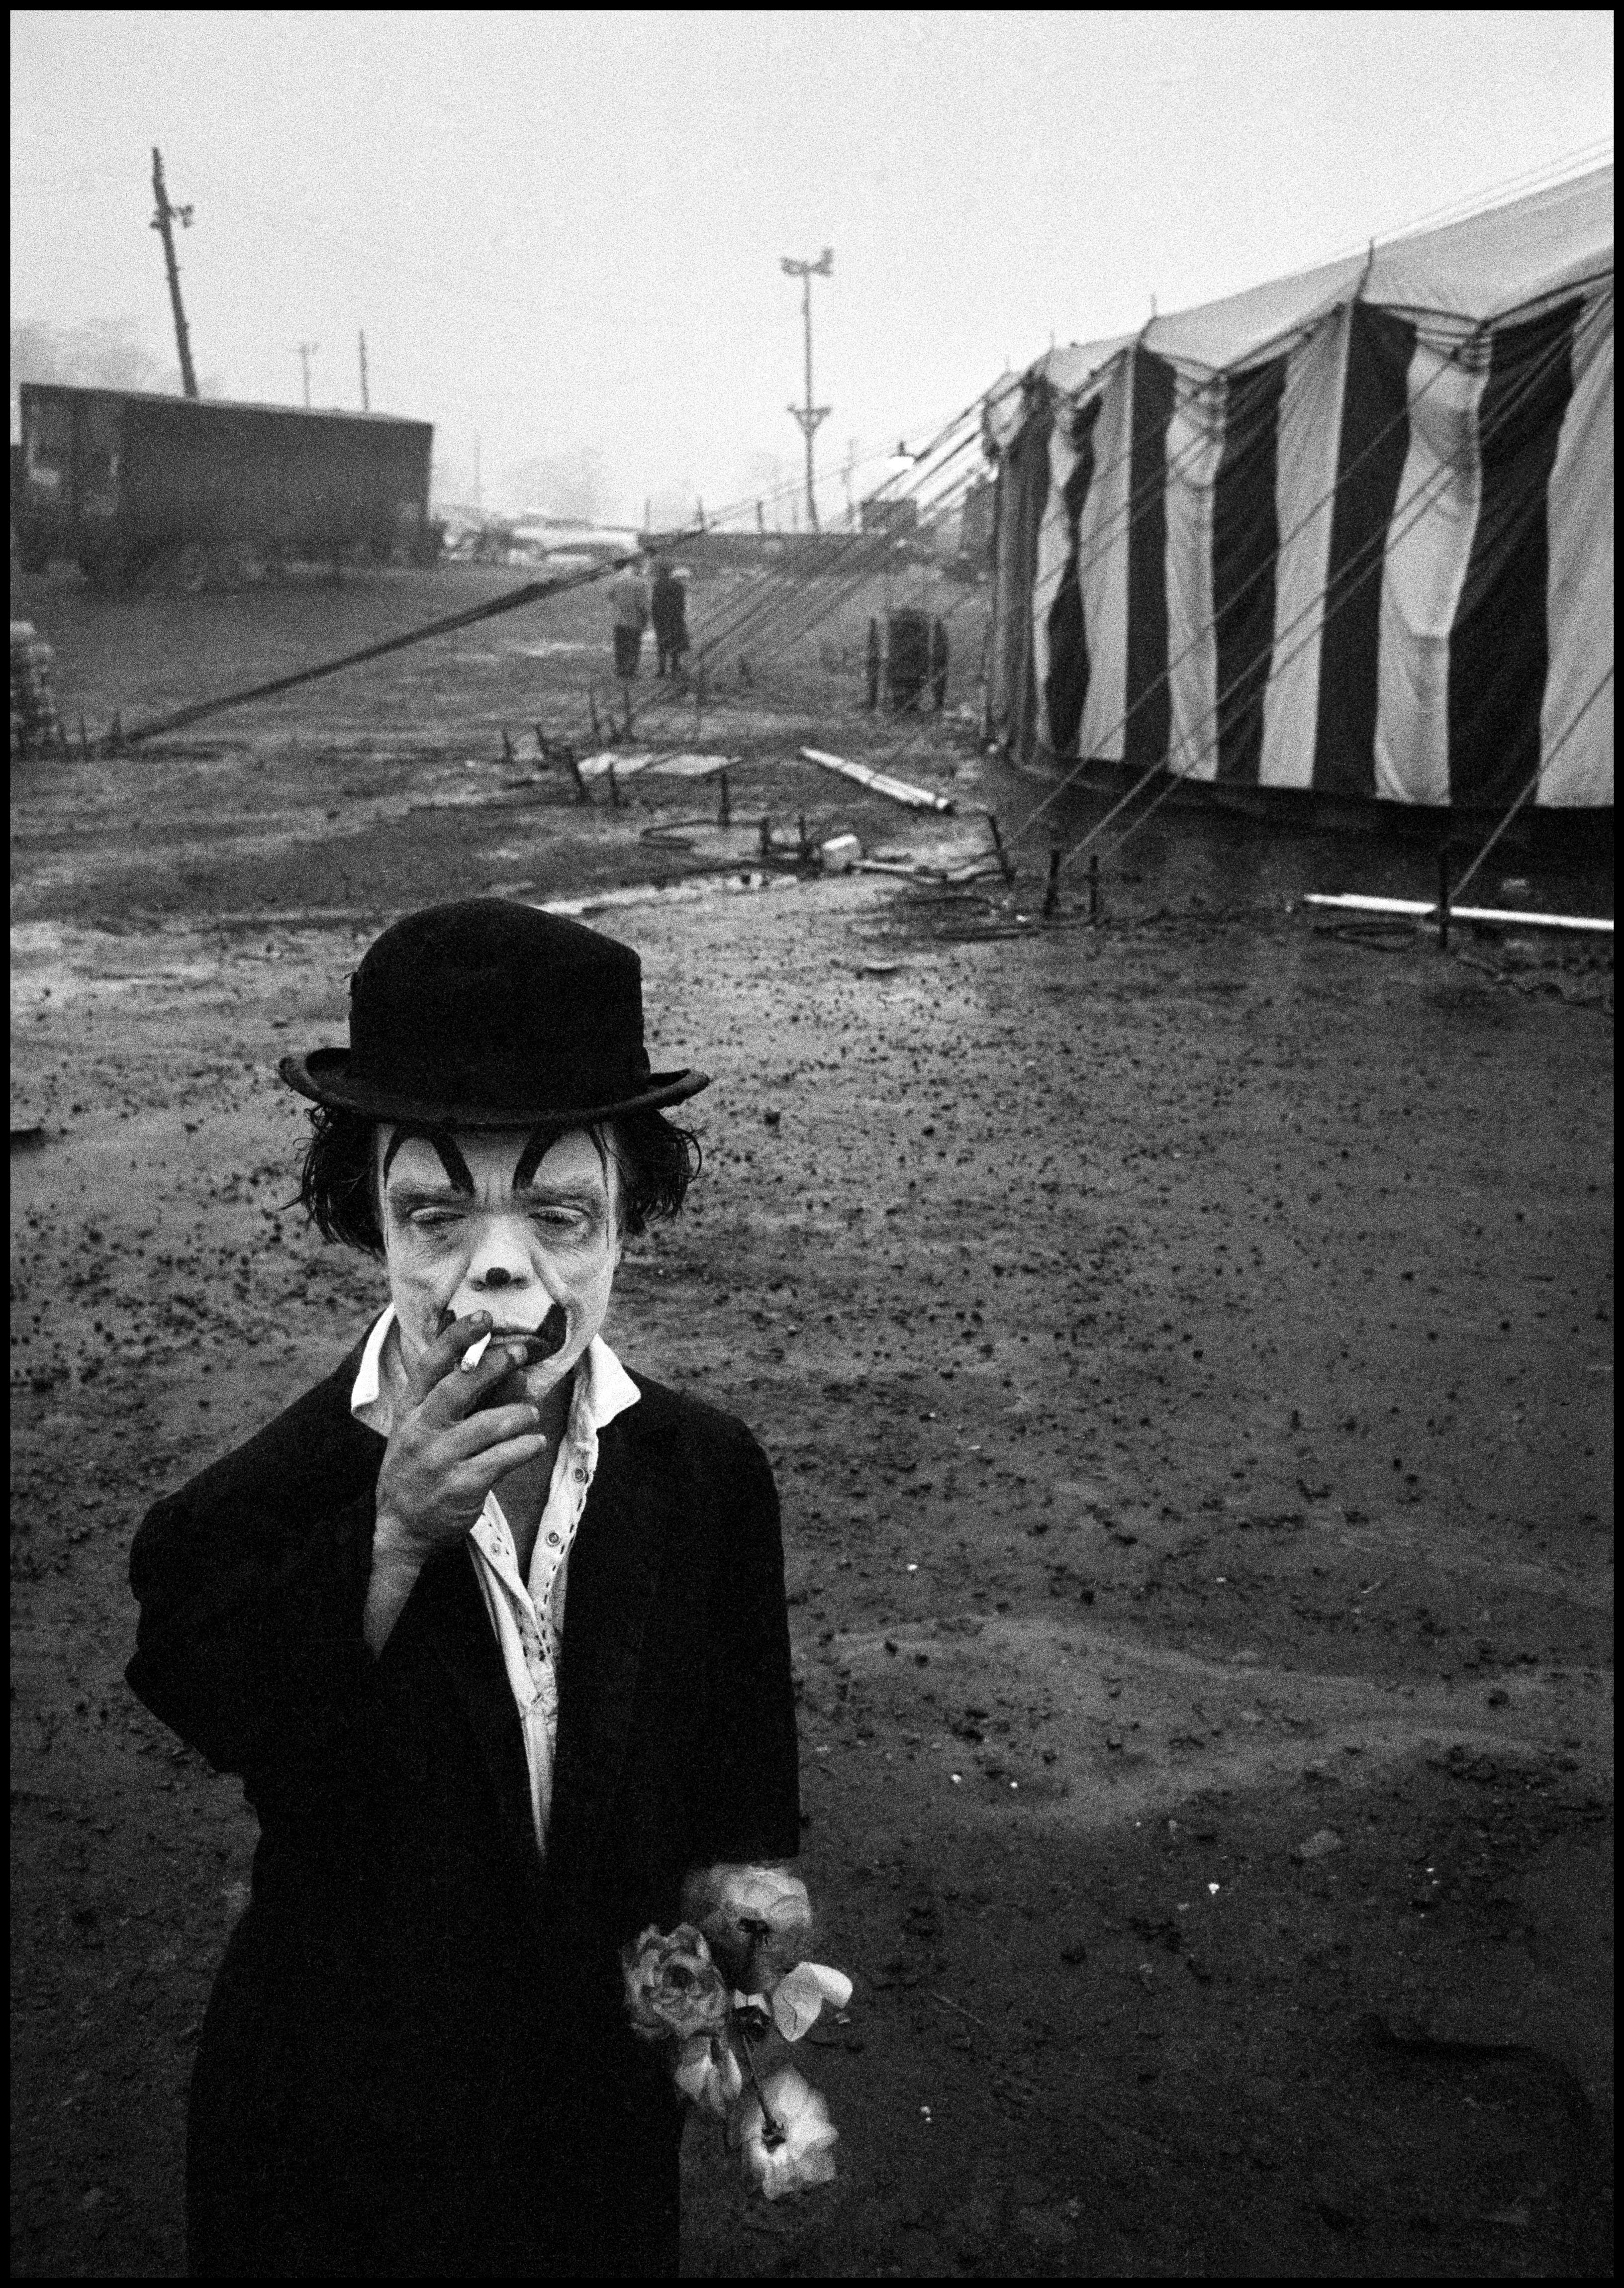 Jimmy Armstrong, The Palisades, New Jersey, 1958